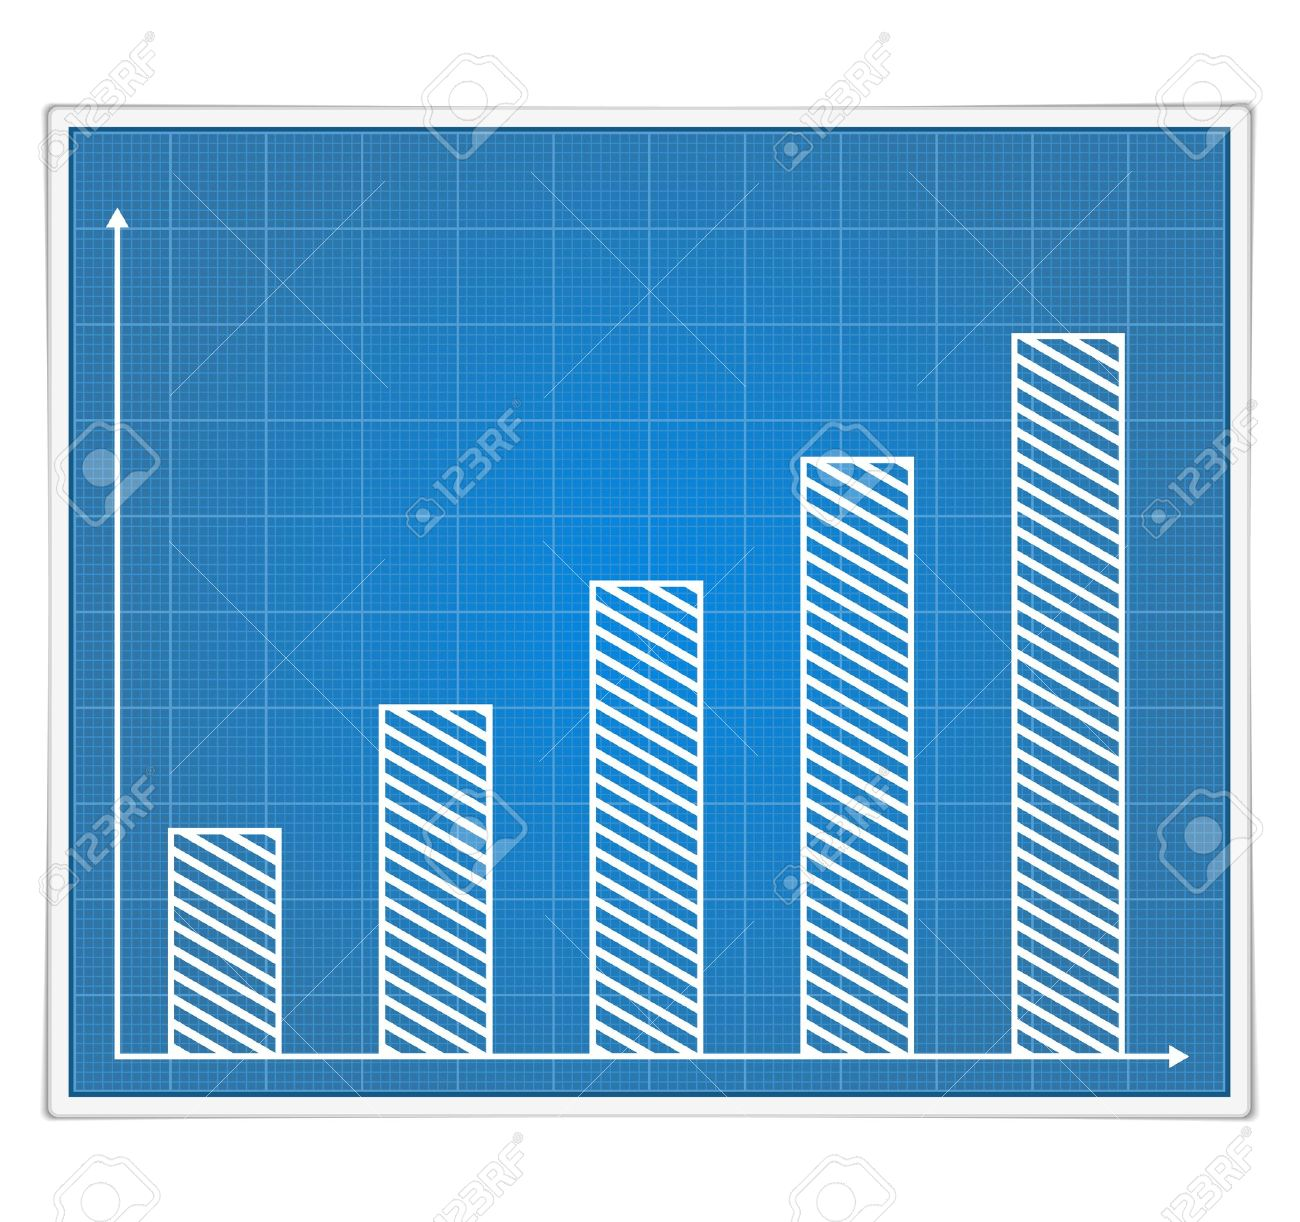 Blueprint bar graph royalty free cliparts vectors and stock blueprint bar graph stock vector 14460118 malvernweather Images